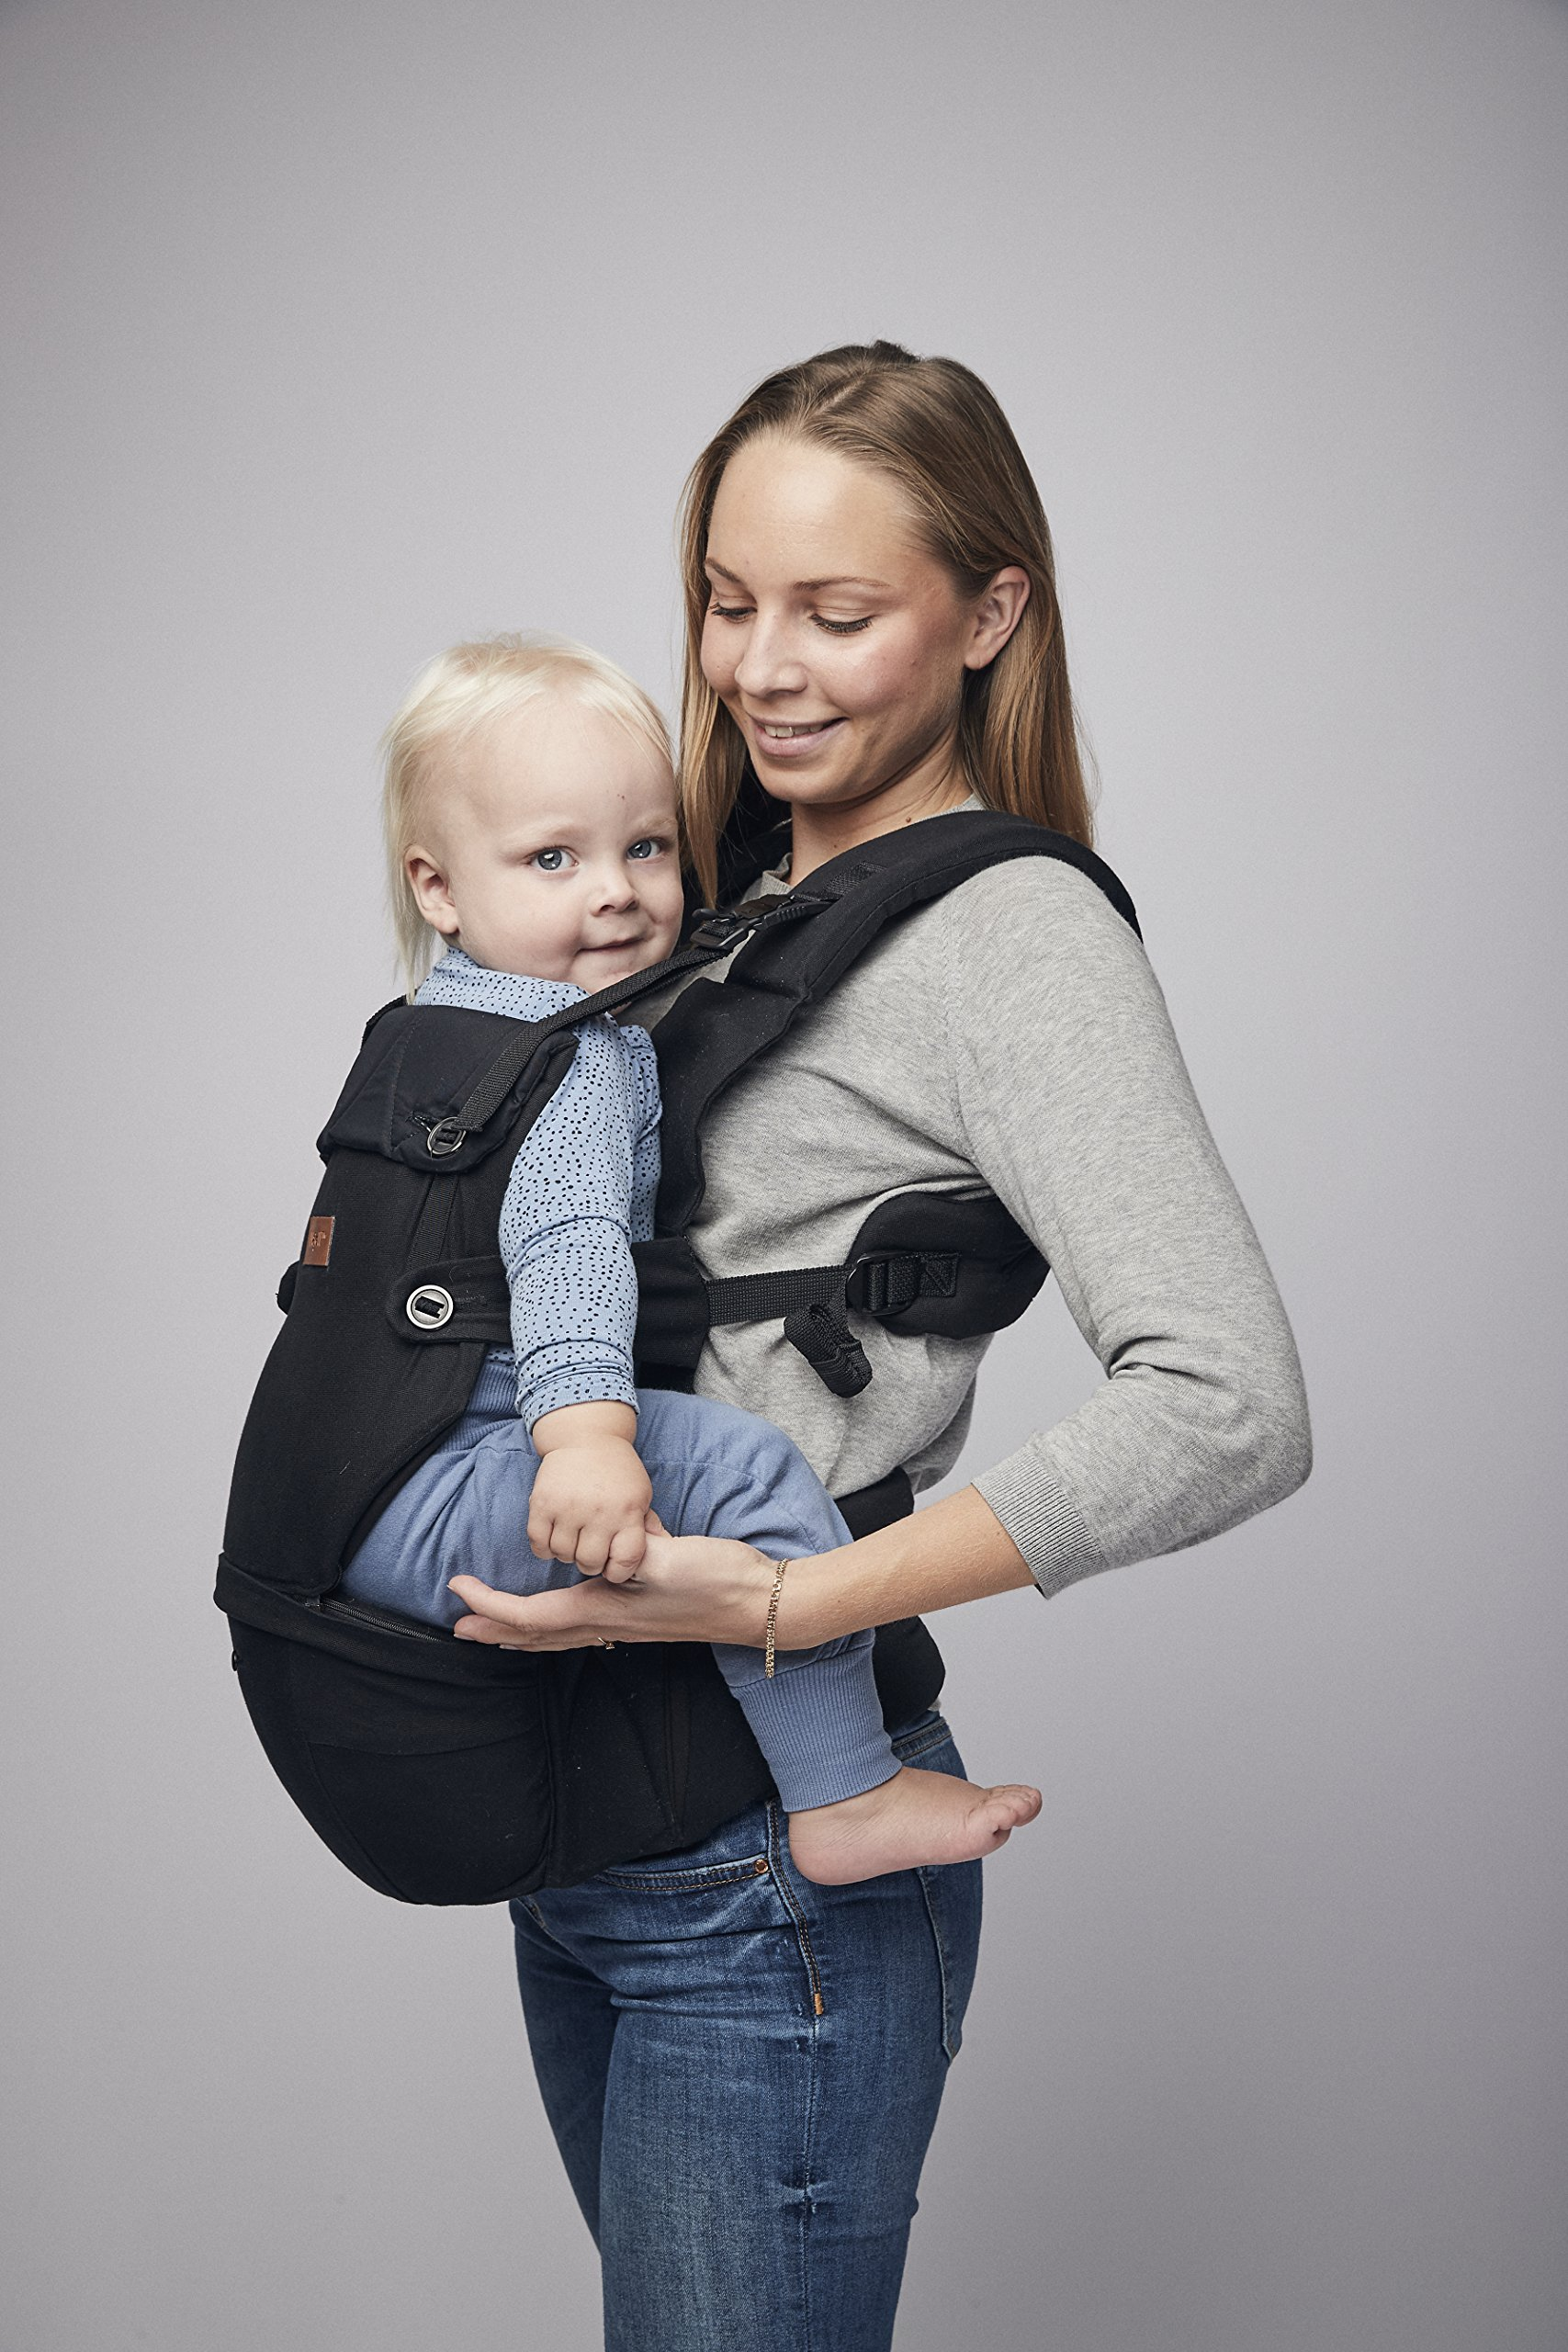 Najell Omni Active Mesh Baby Carrier with Hip Seat, Brilliant Black Béaba New-born ergonomic position and hips seat from 6 months. Market leading weight distribution with hip seat, recommended by the international hip dysplasia institute as a hip-healthy baby carrier Weight: 3, 5 to 15 kg and age: new-born to 3 years. 6